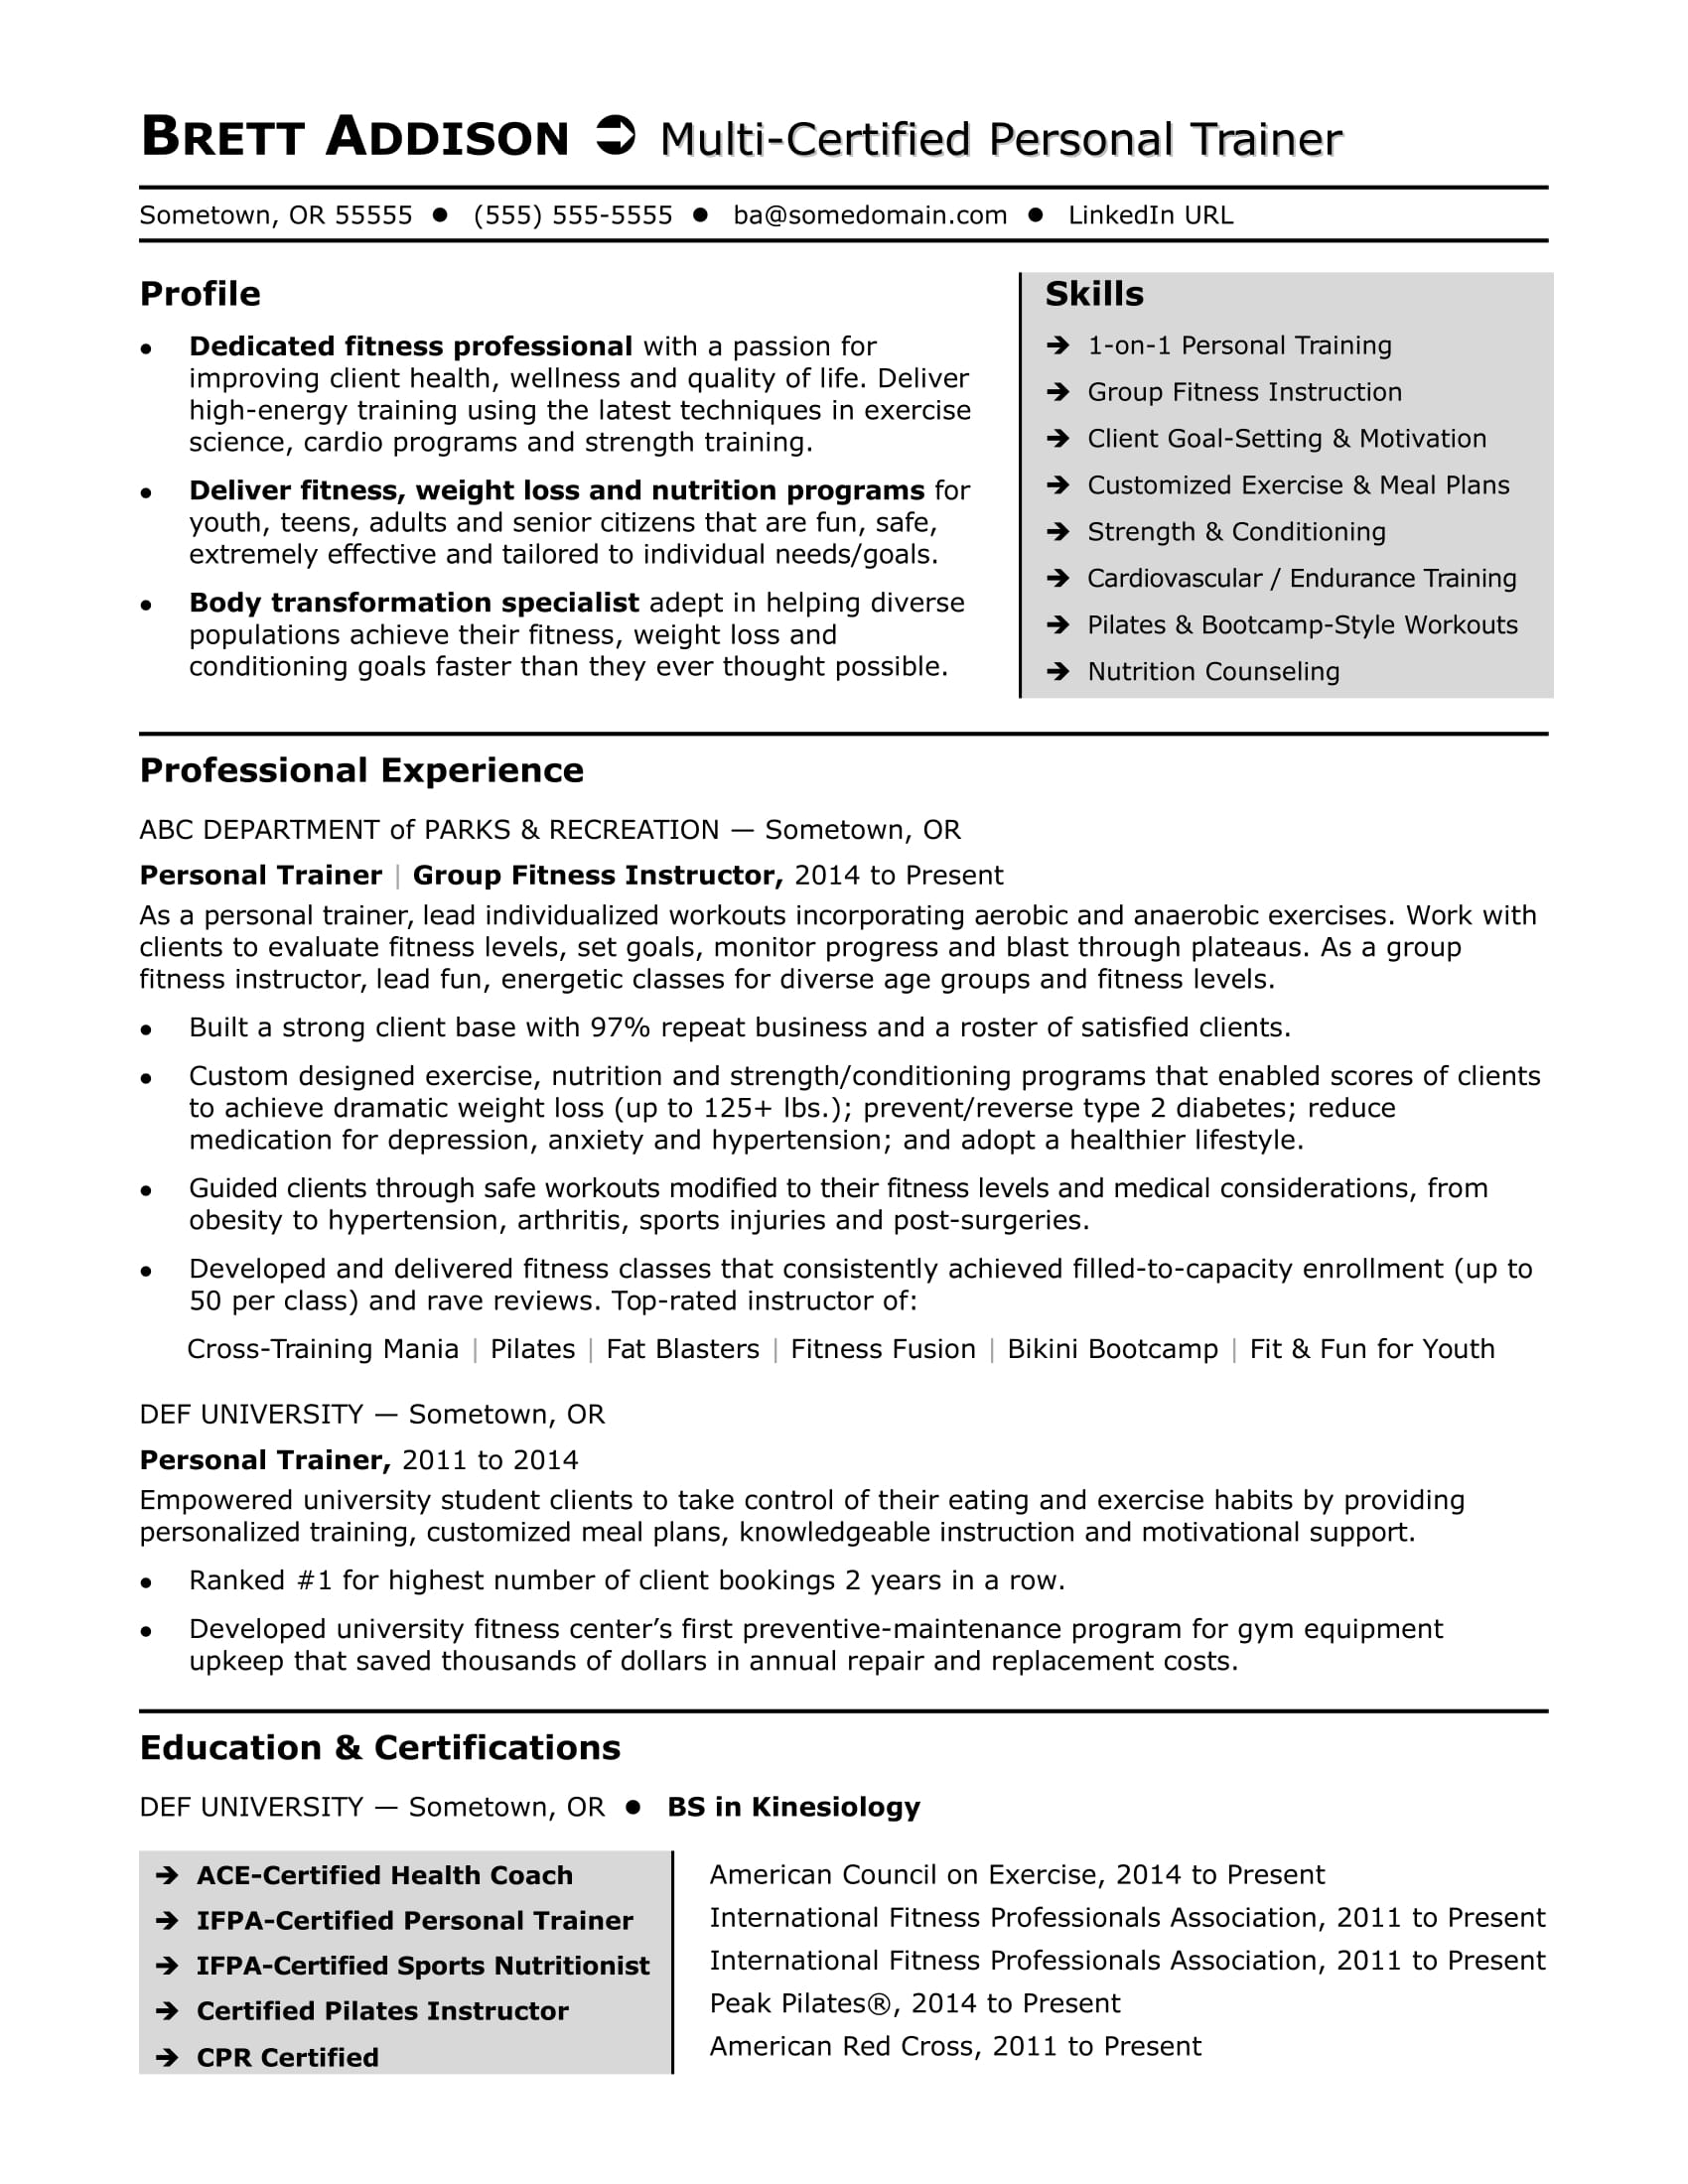 Personal Trainer Resume Sample | Monster.com